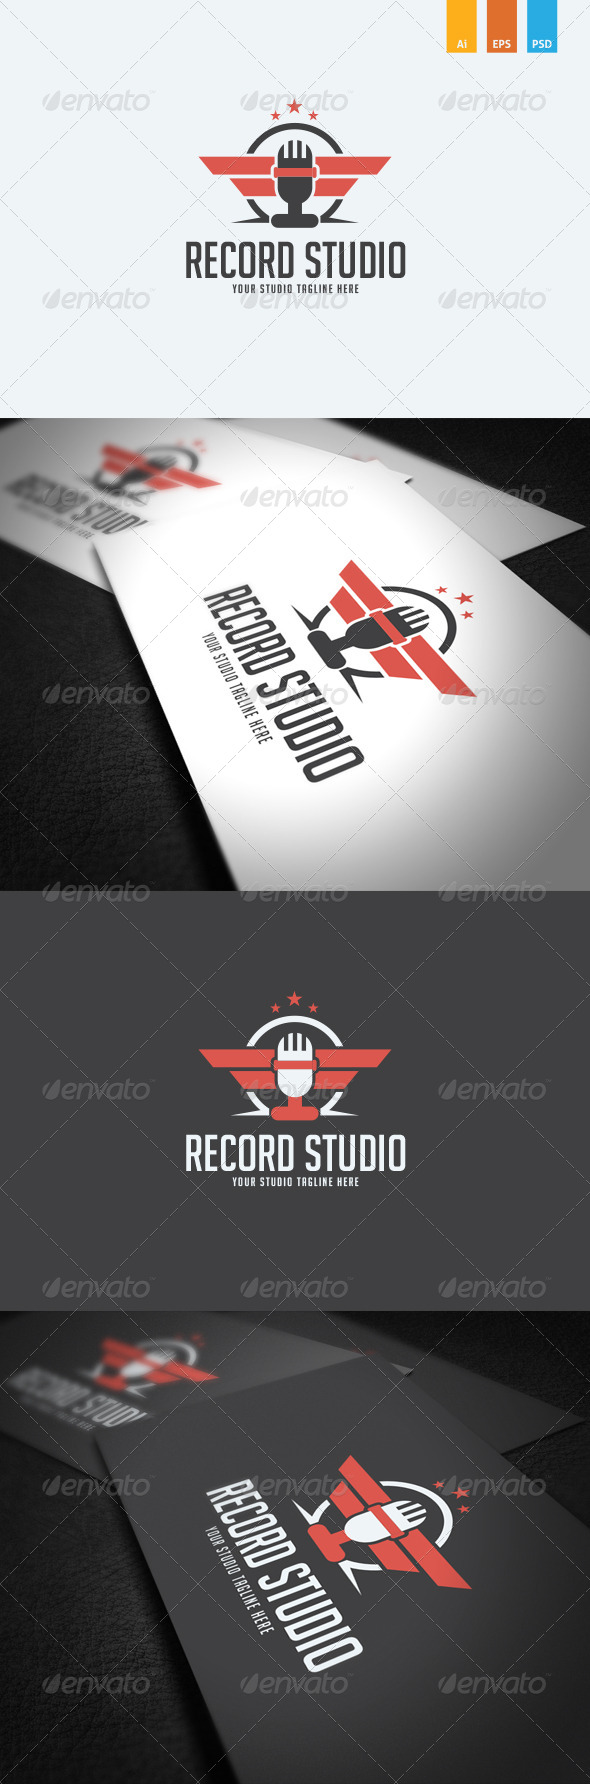 GraphicRiver Record Studio Logo Template 8746075